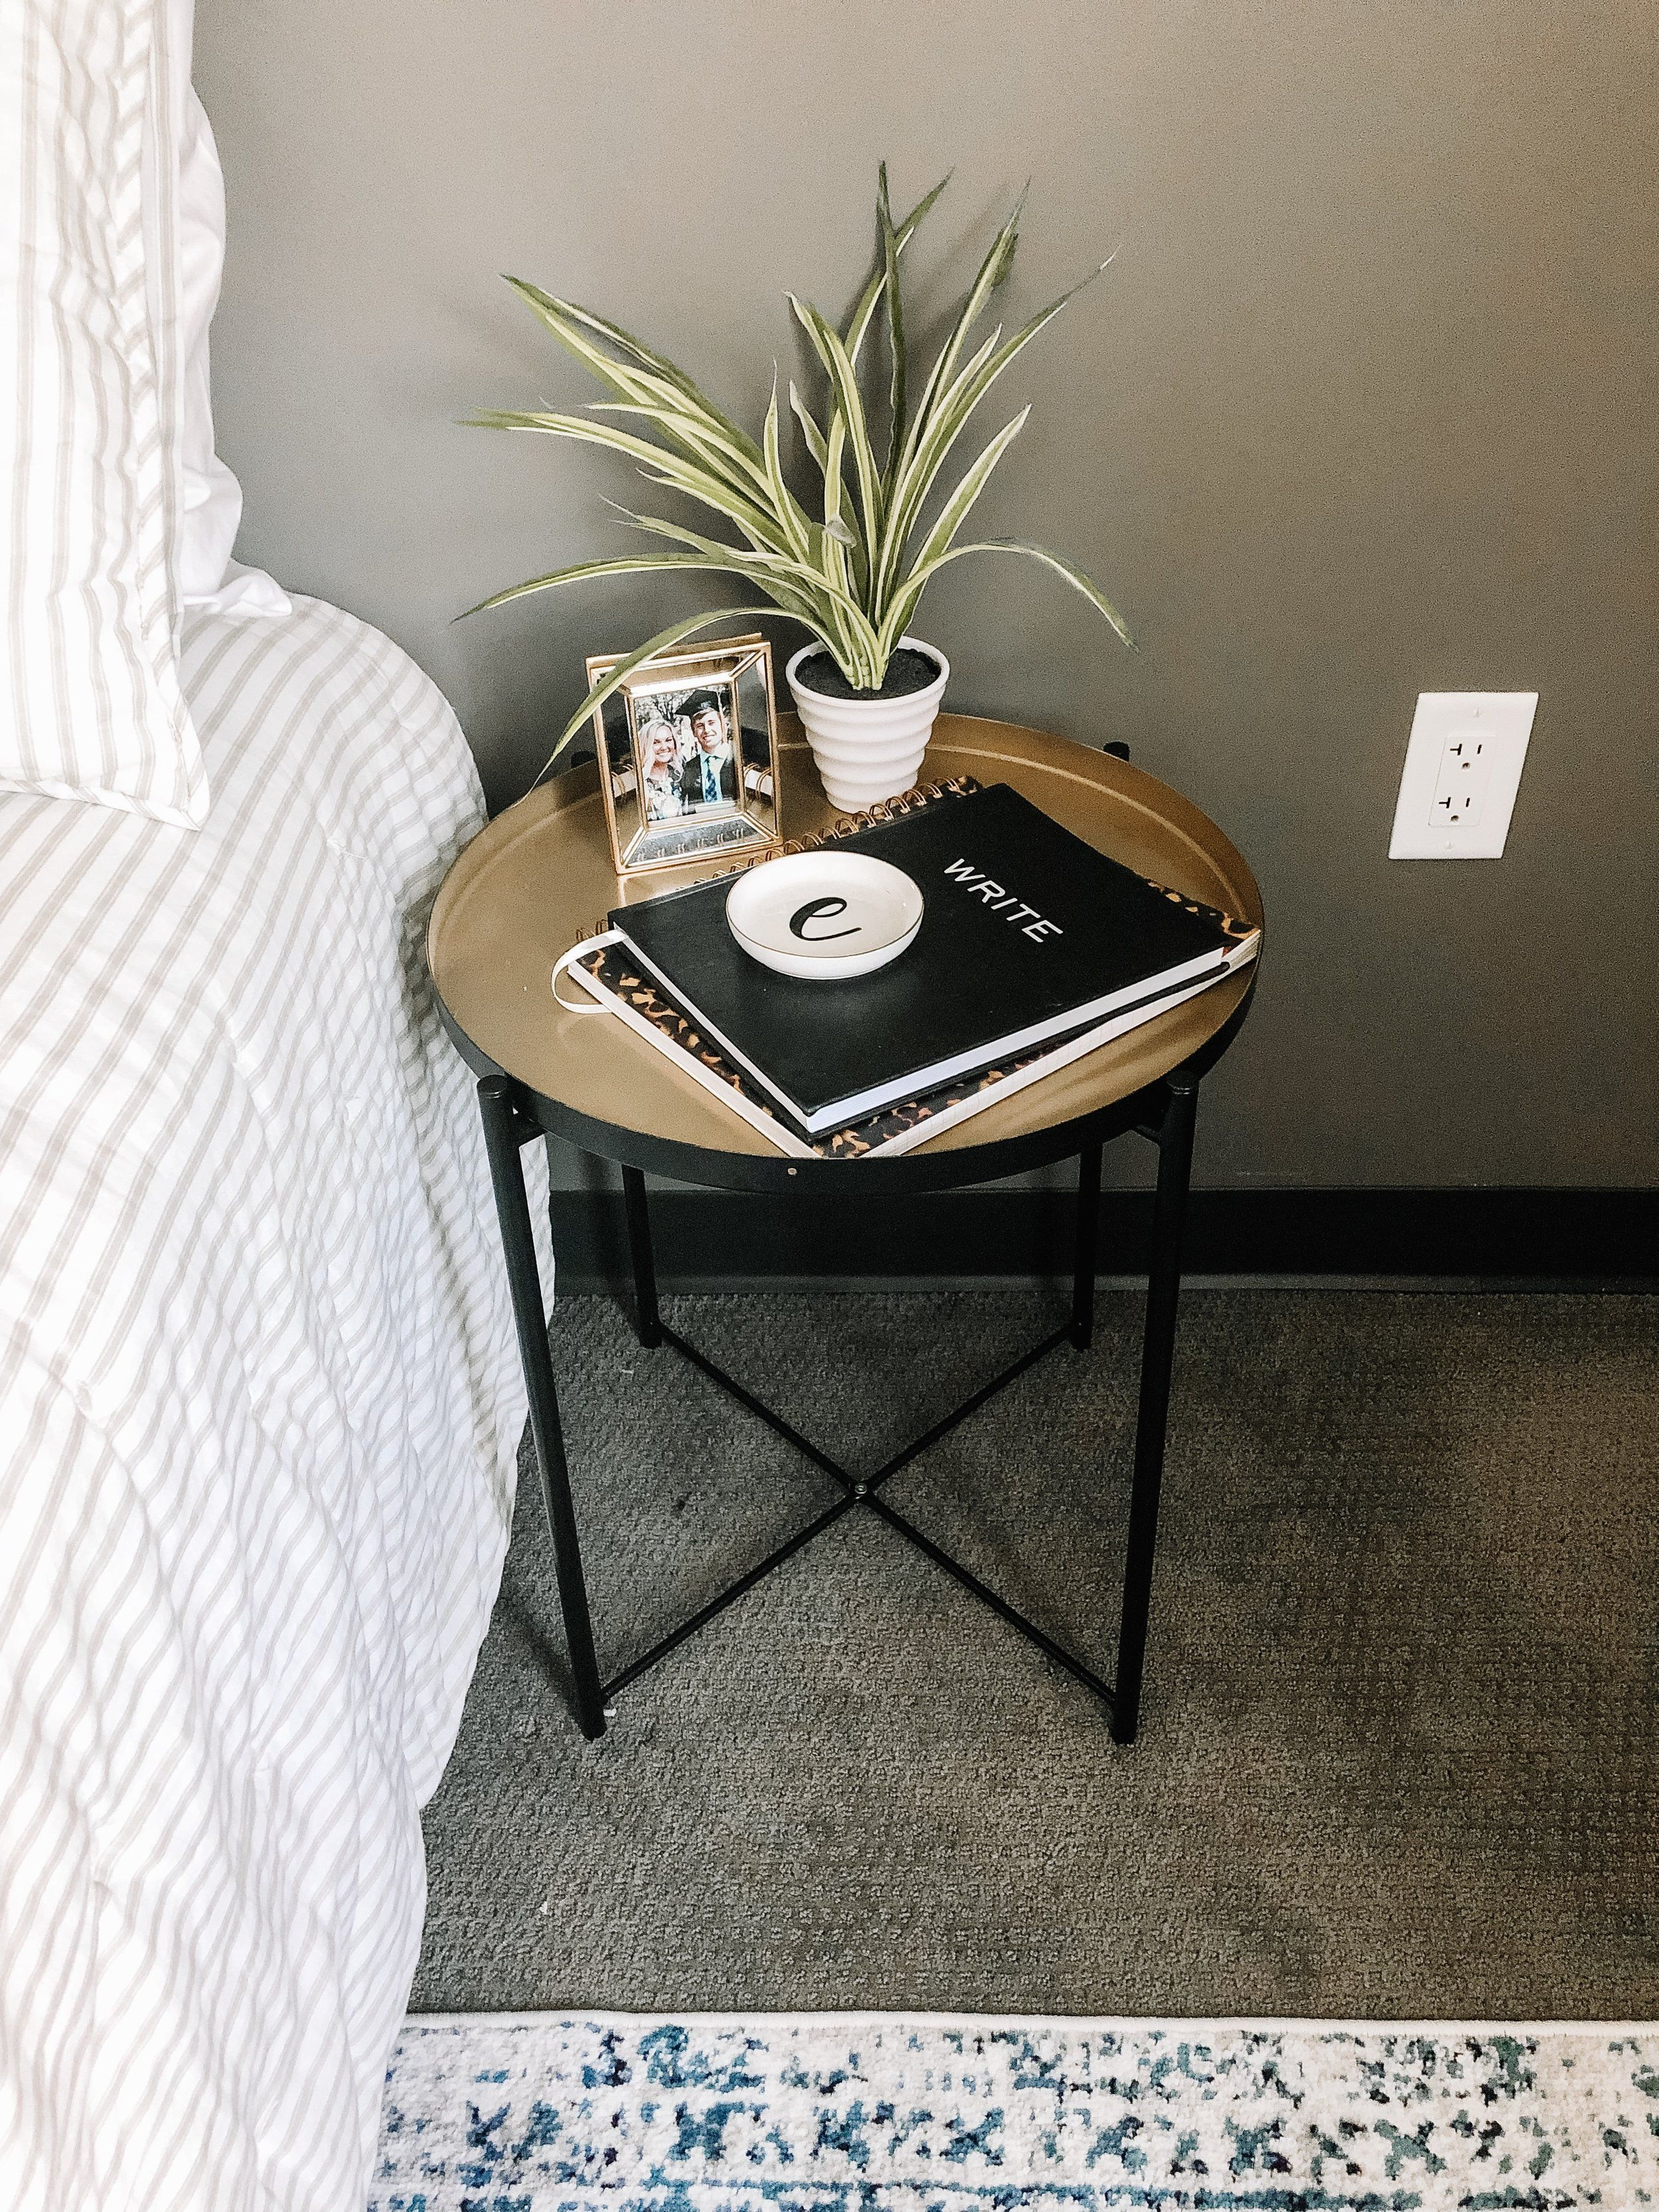 Ikea Gladom Tray Table Hack Ikea Living Room Tables Ikea Hack